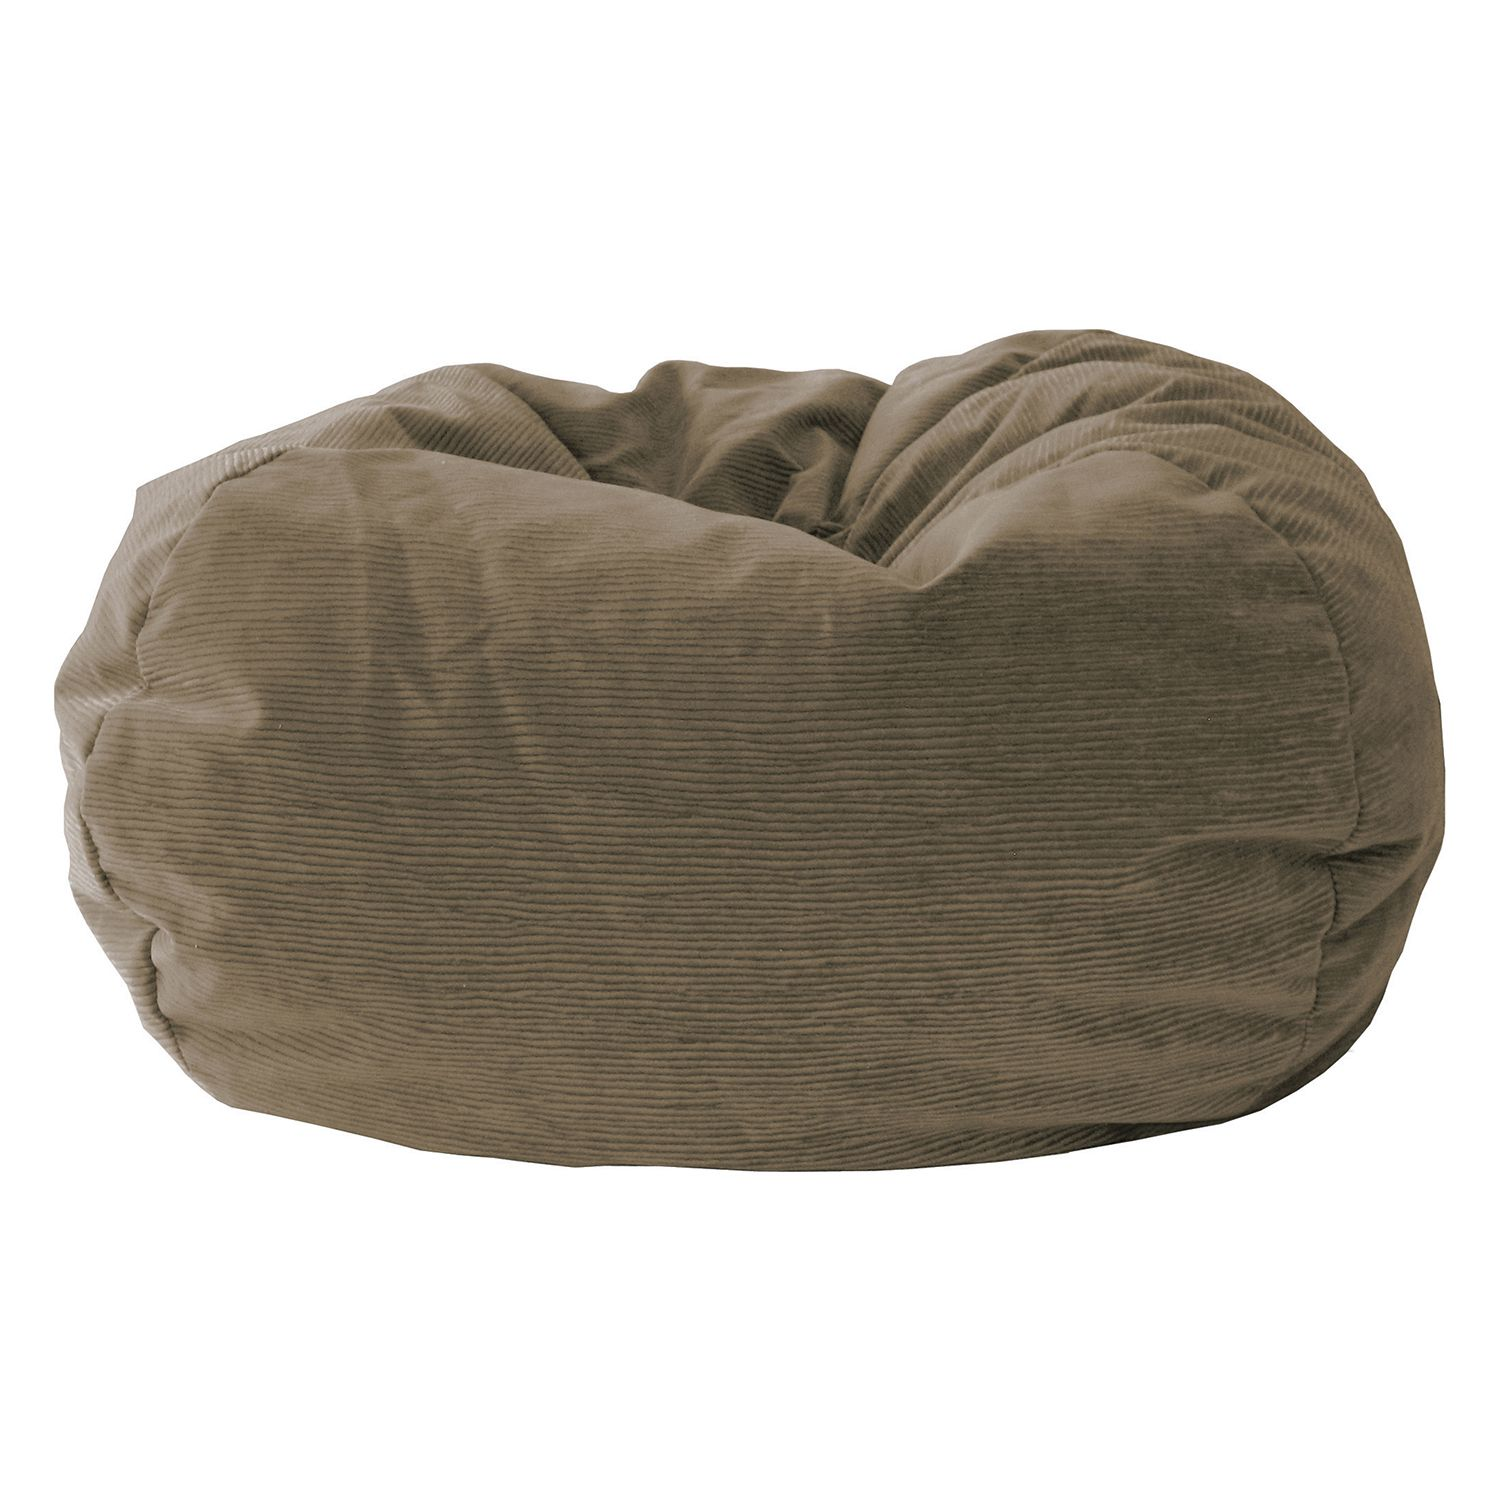 Extra Large Microfiber Faux Suede Corduroy Bean Bag Chair